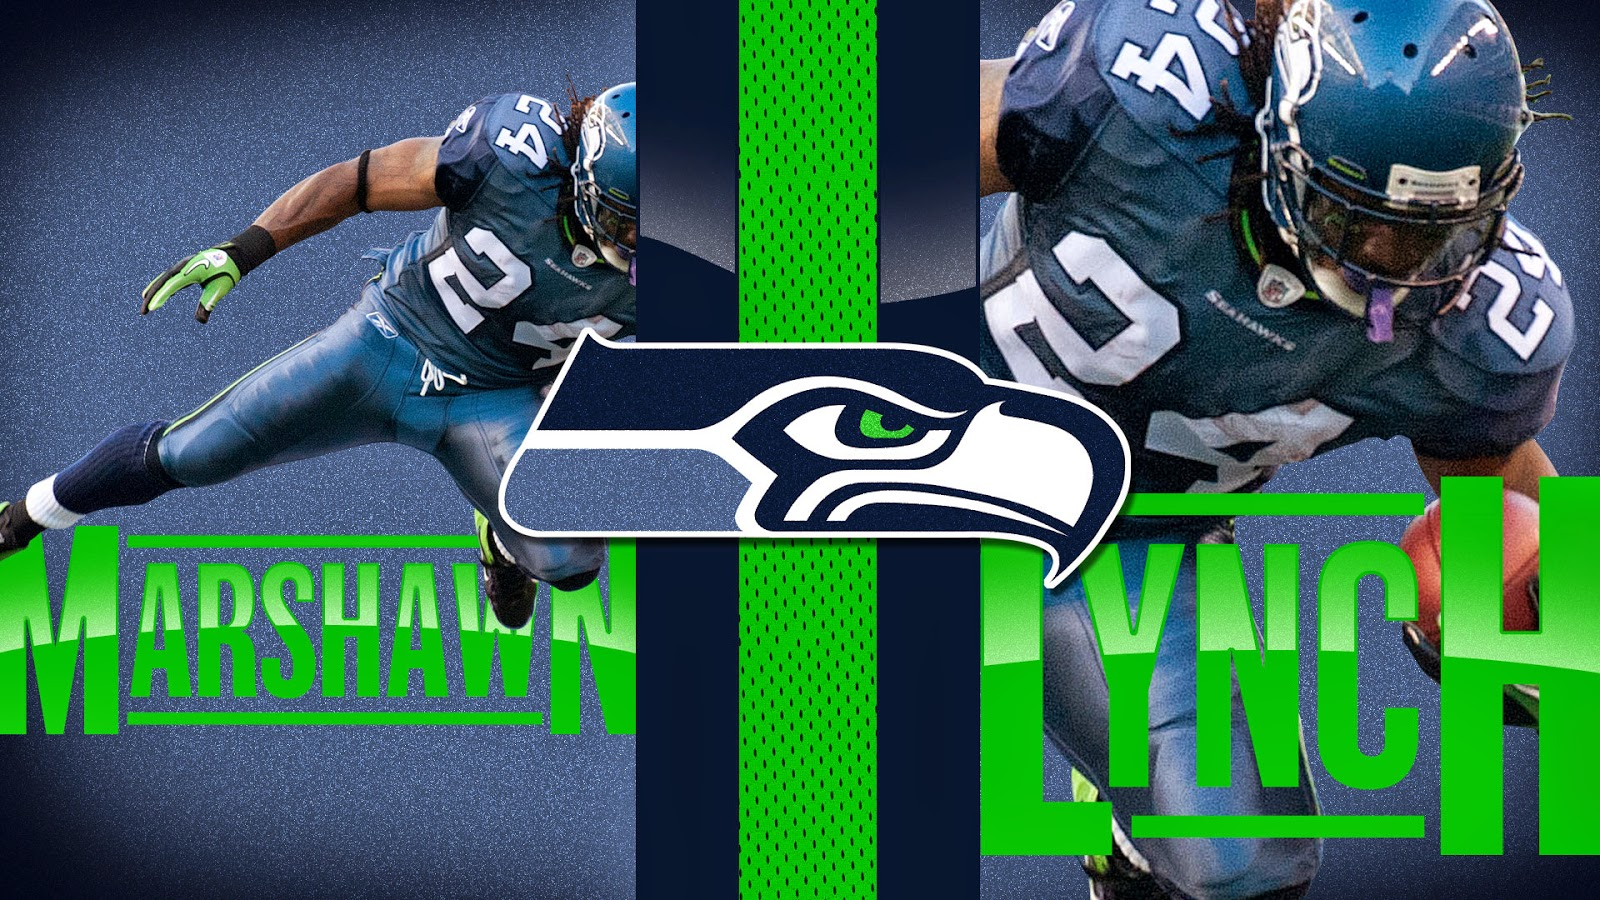 Seattle seahawks wallpapers wallpapers for desktop seattle seahawks wallpapers creative voltagebd Image collections